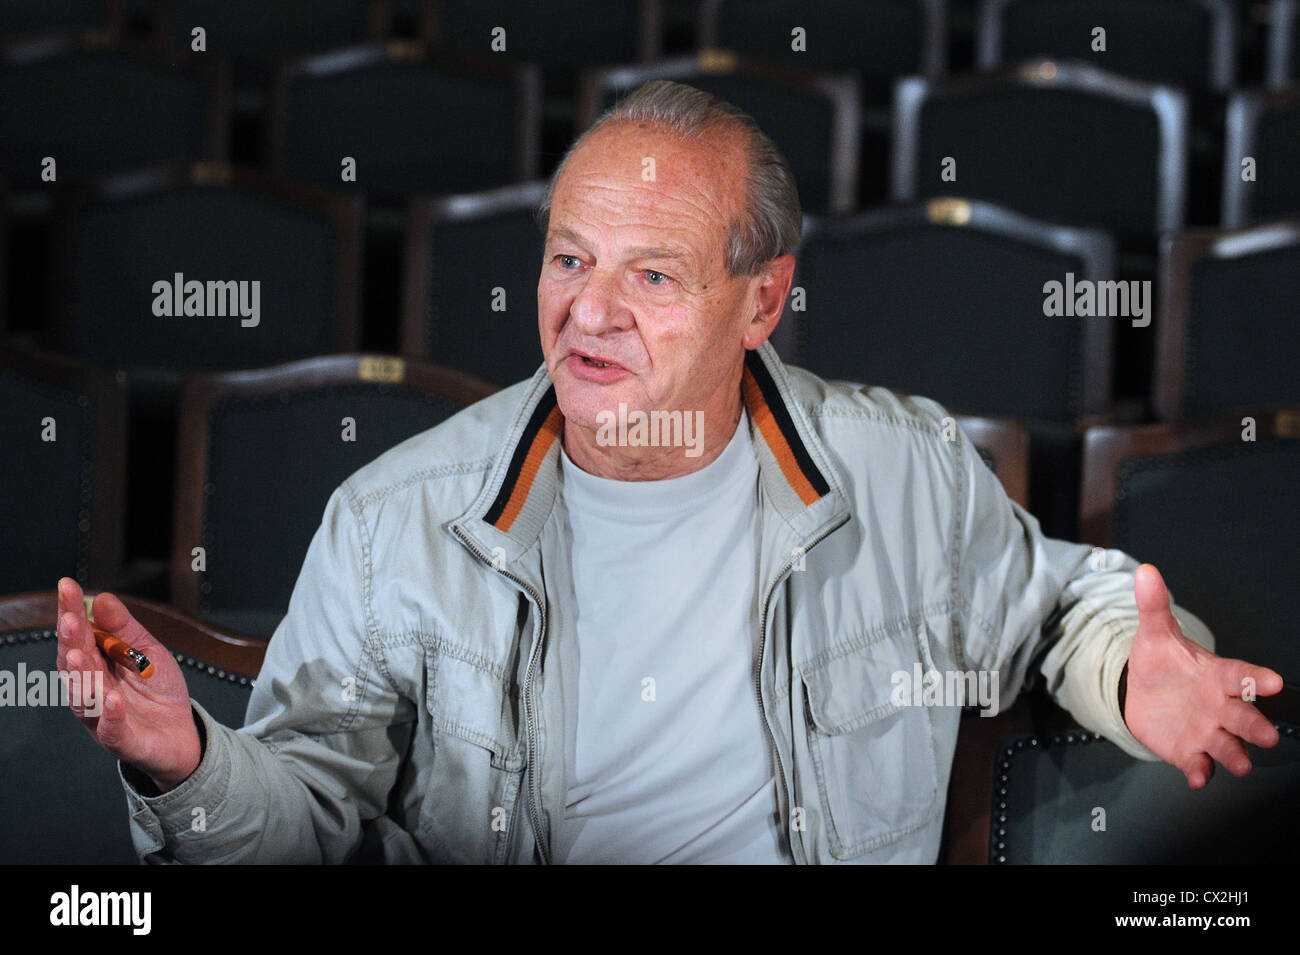 ITAR-TASS: MOSCOW, RUSSIA. SEPTEMBER 19, 2011. Director Adolf Shapiro at the dress rehearsal of his production of - Stock Image